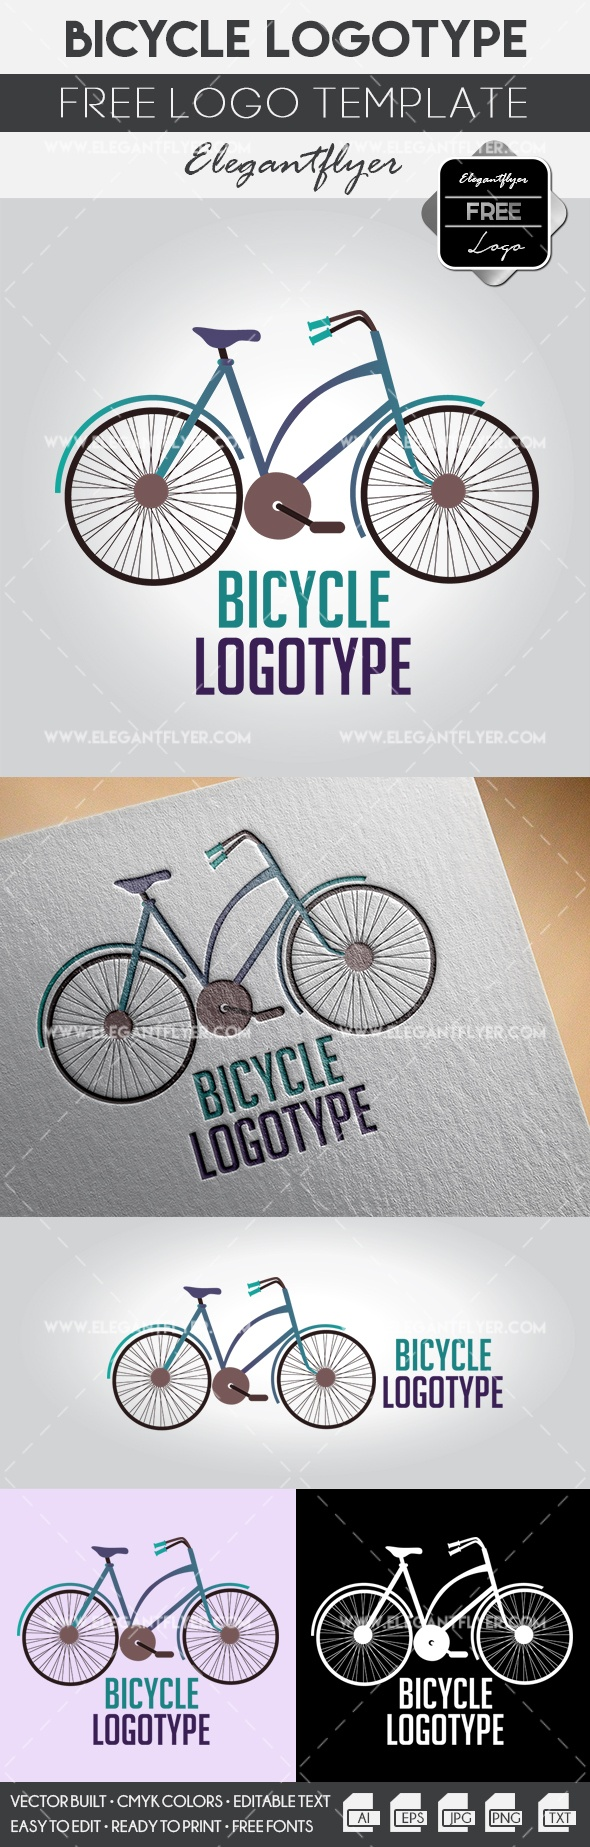 Bicycle – Free Logo Templates